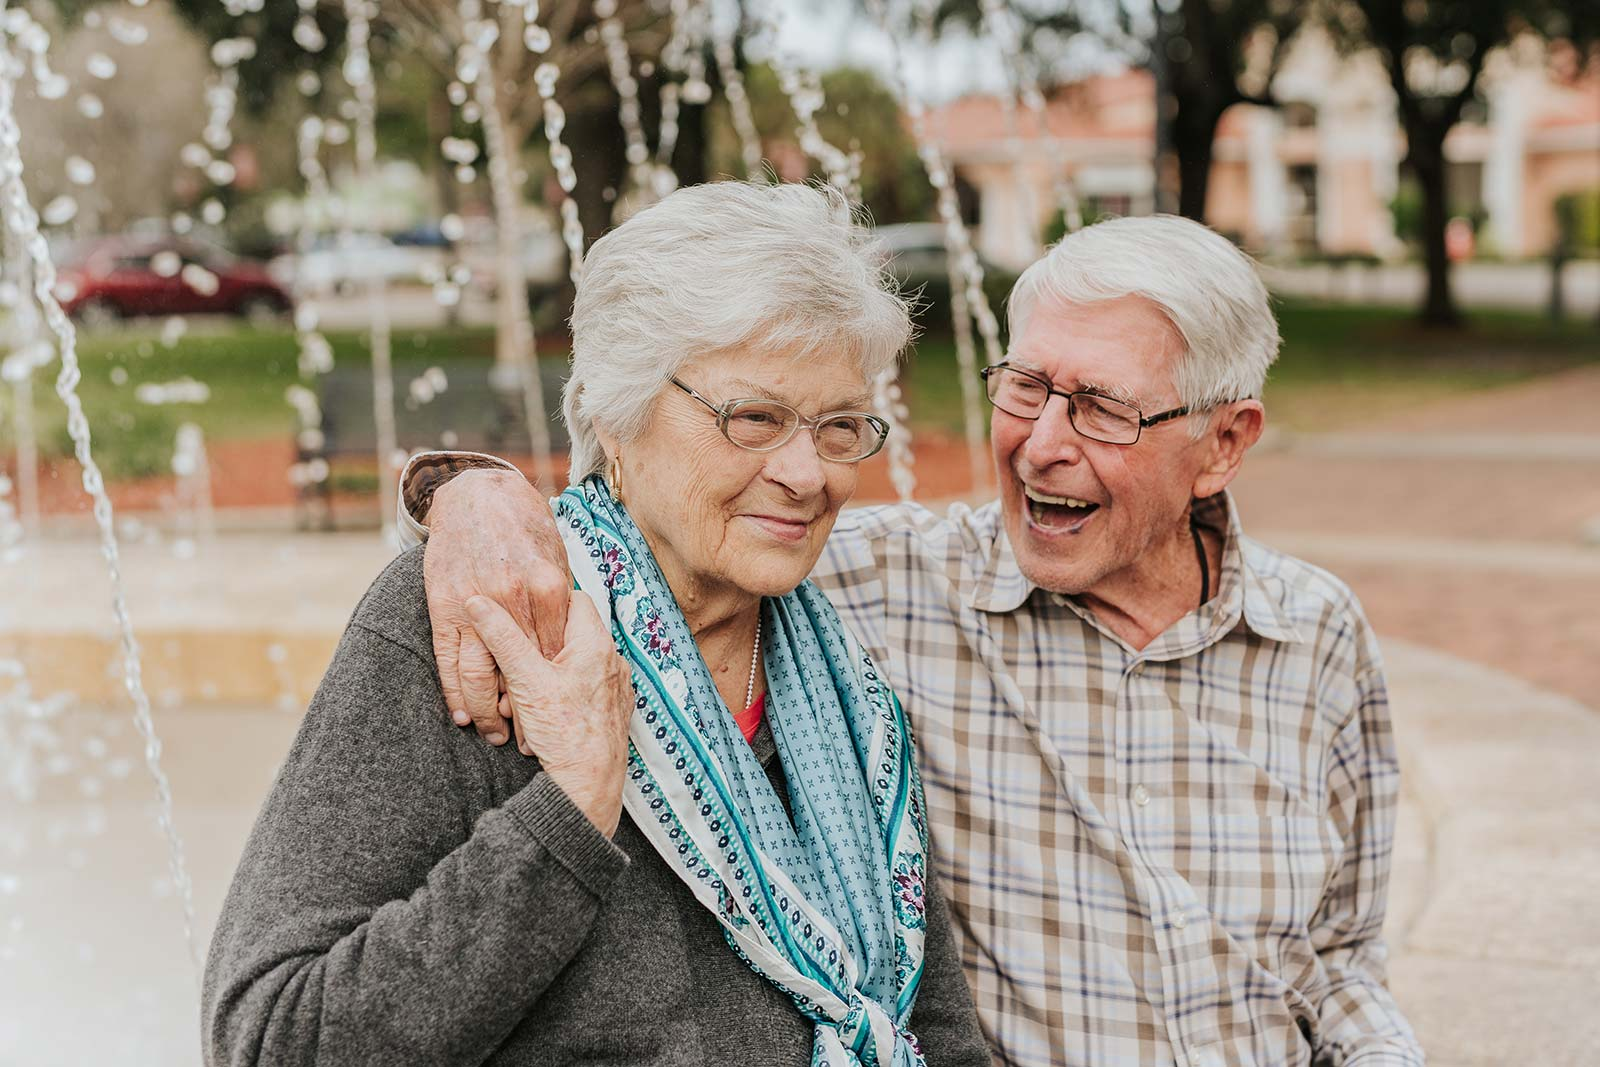 Senior man with arm around senior woman with fountain in background behind them